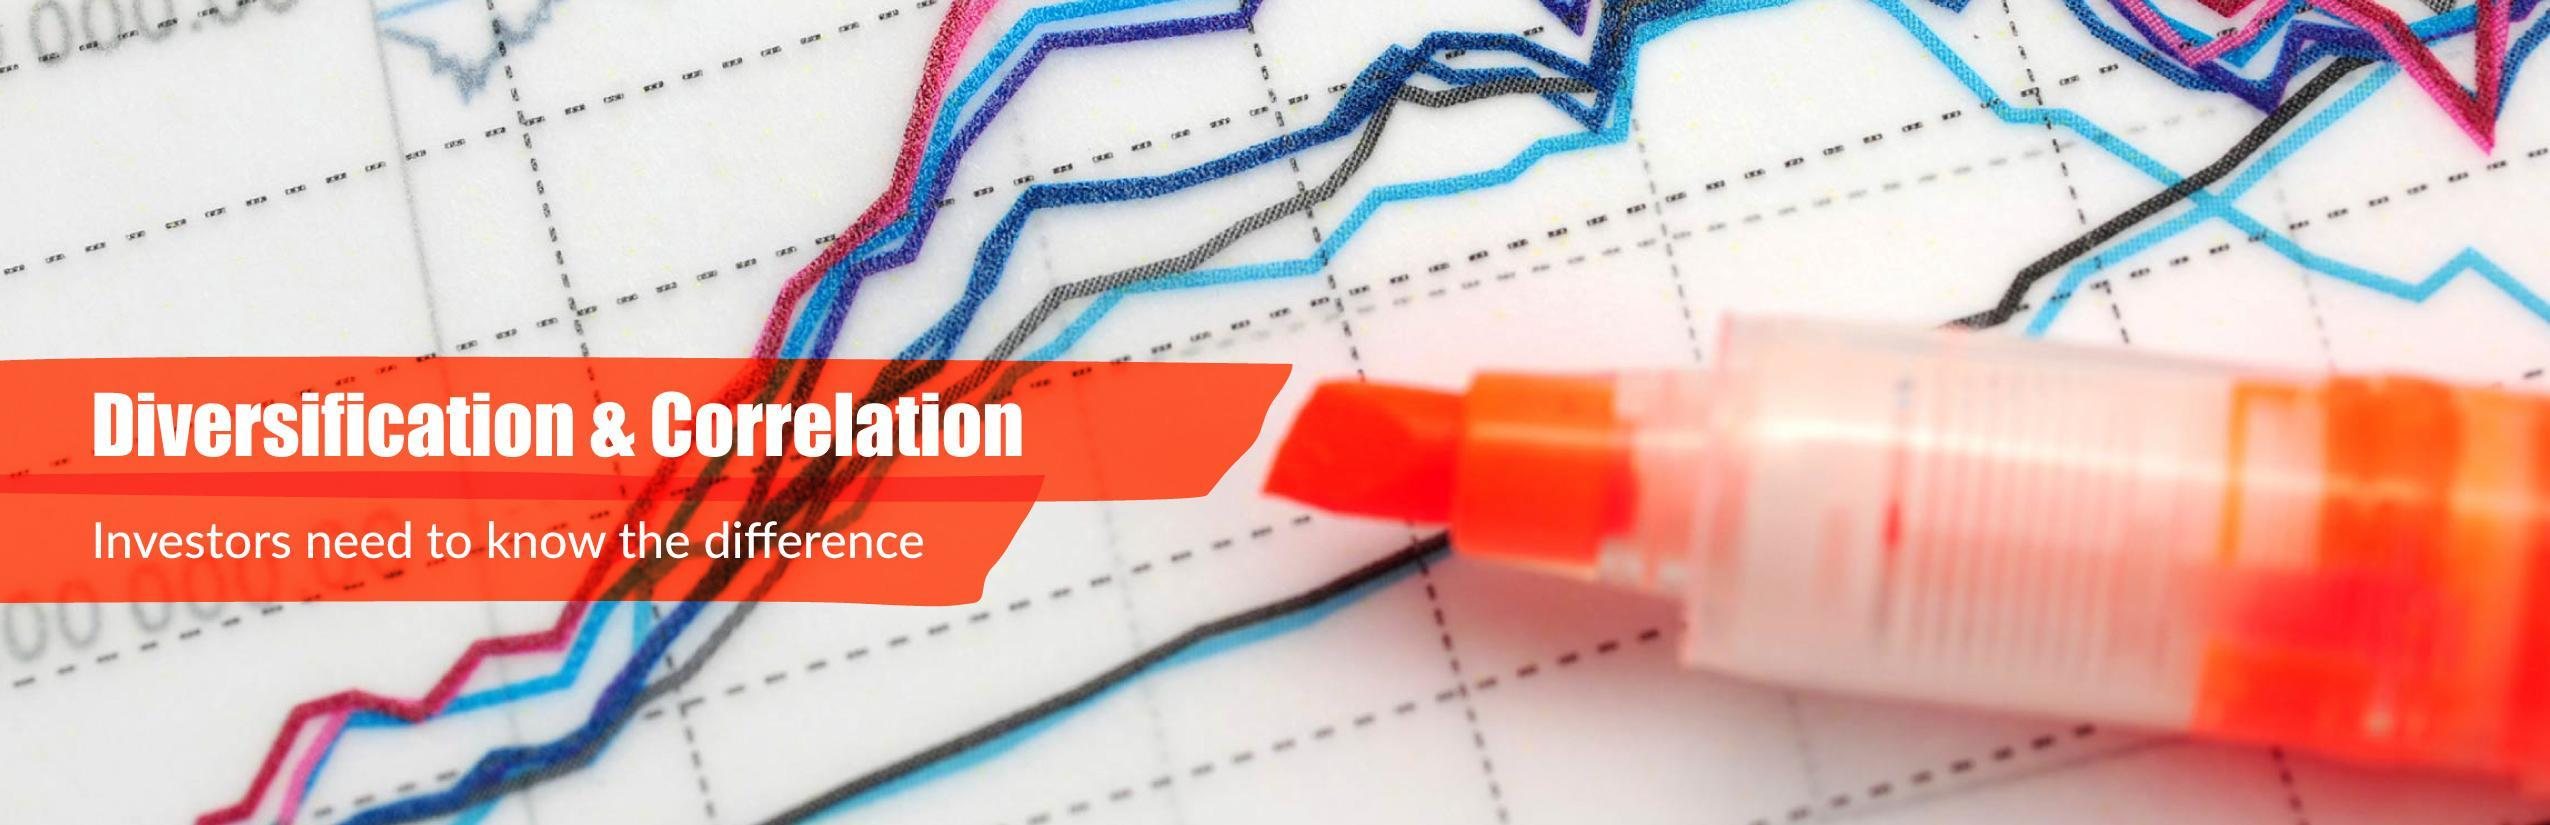 Diversification & Correlation Investors need to know the difference